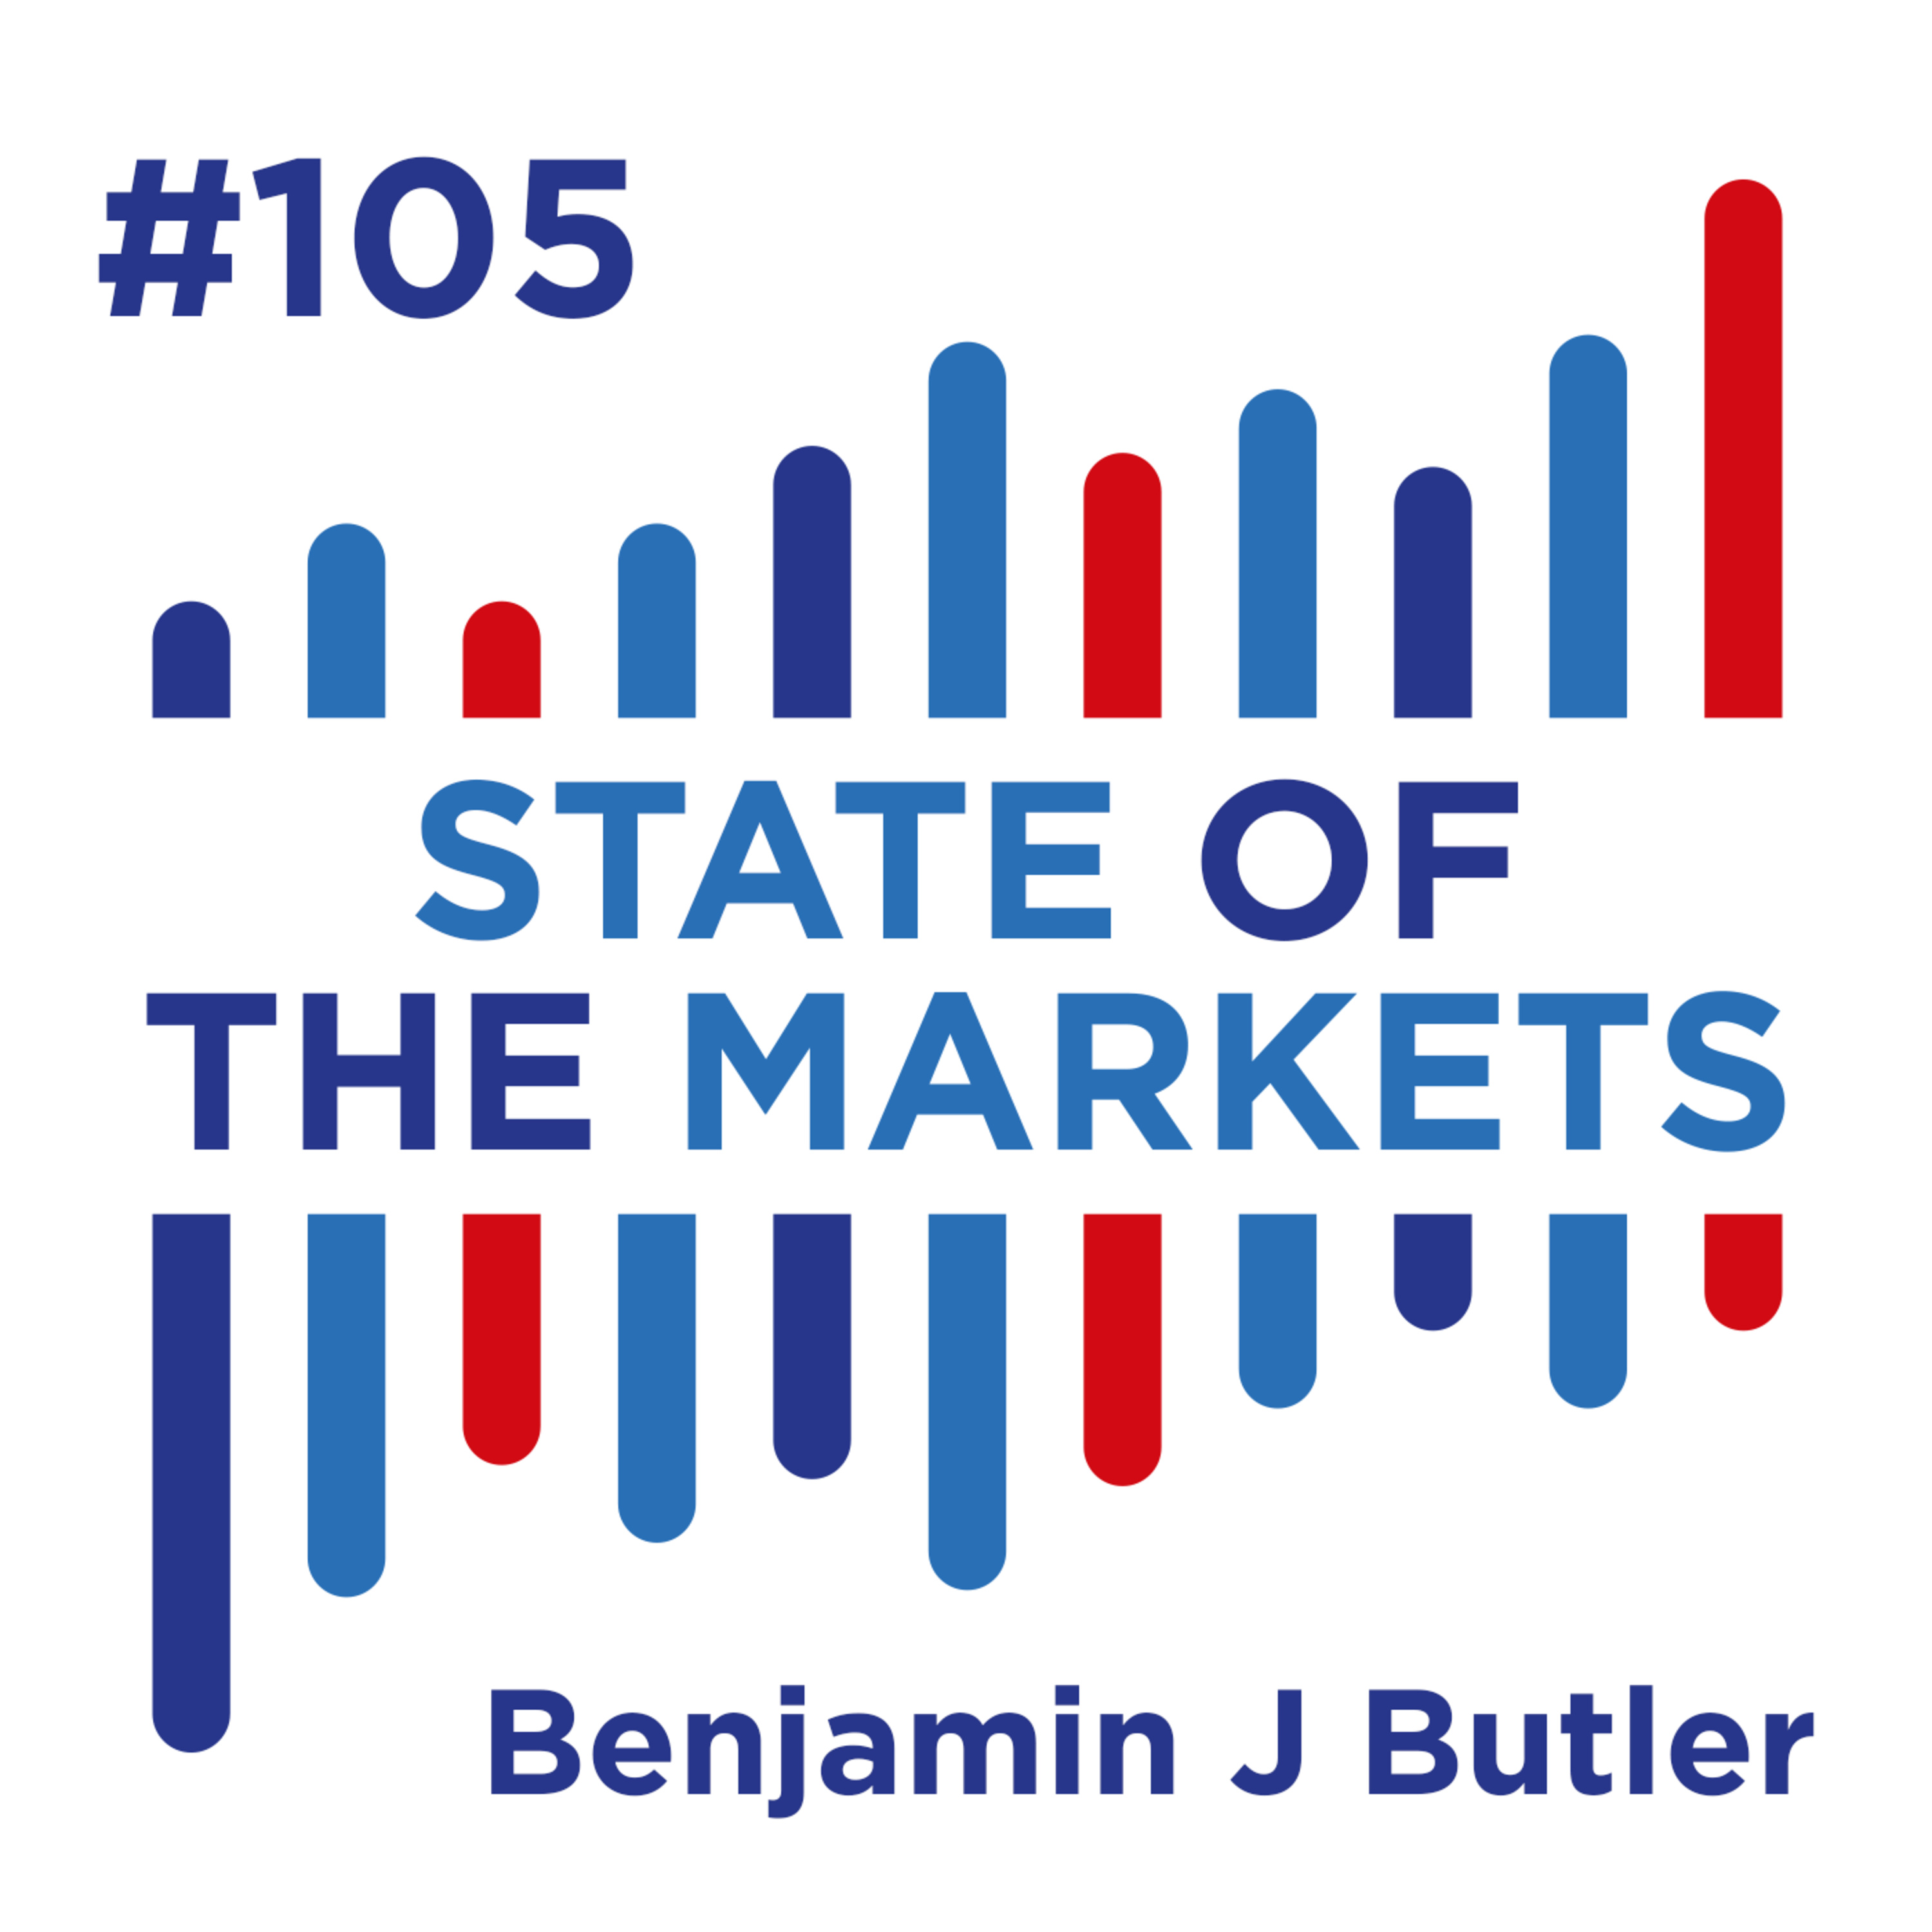 #105 Benjamin J Butler: The End of Big Tech, Future-shock and The Splinternet